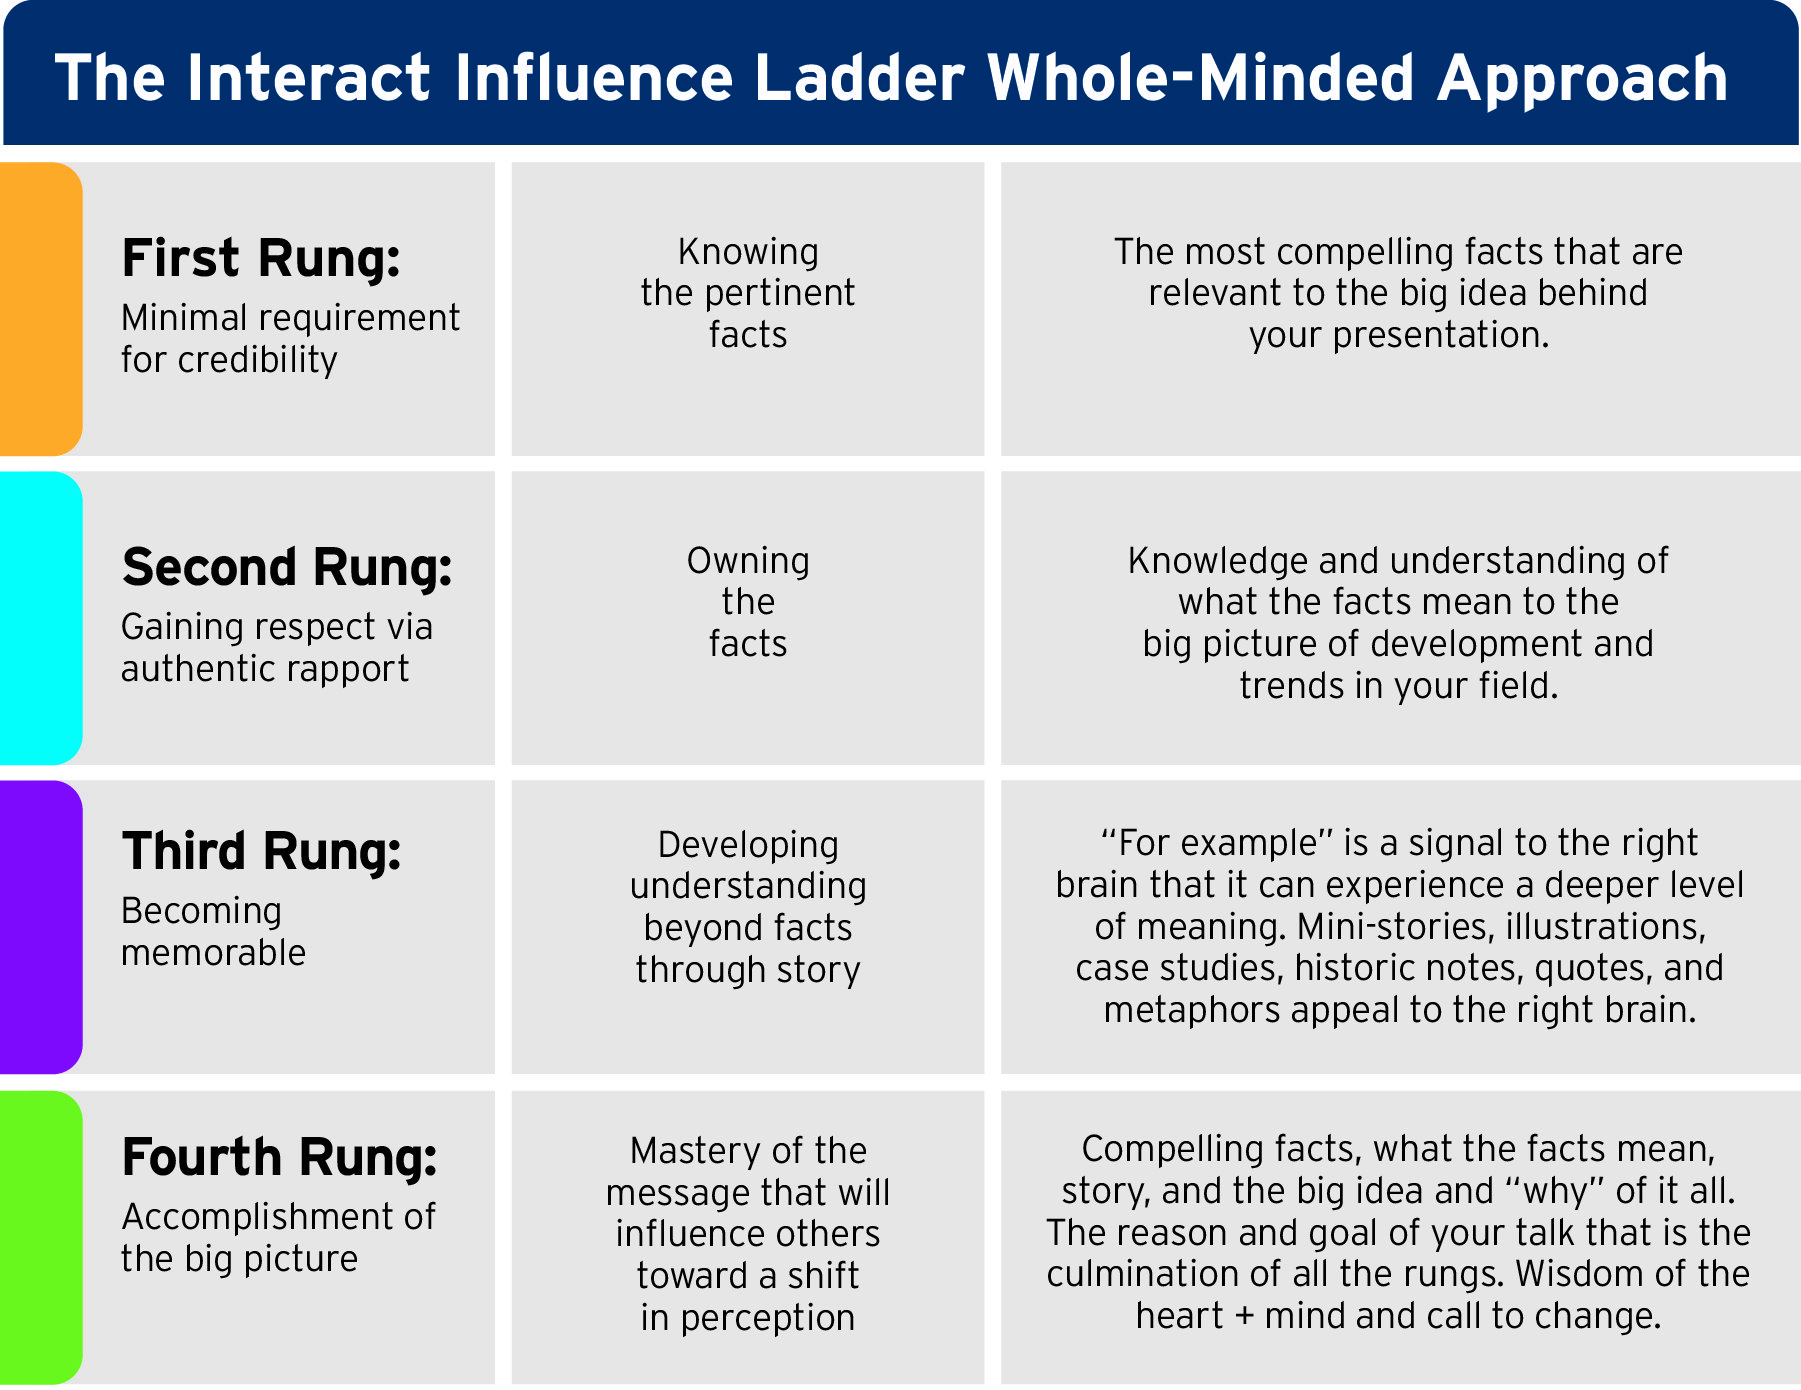 The Interact Influence Ladder will help you gain credibility with your audience